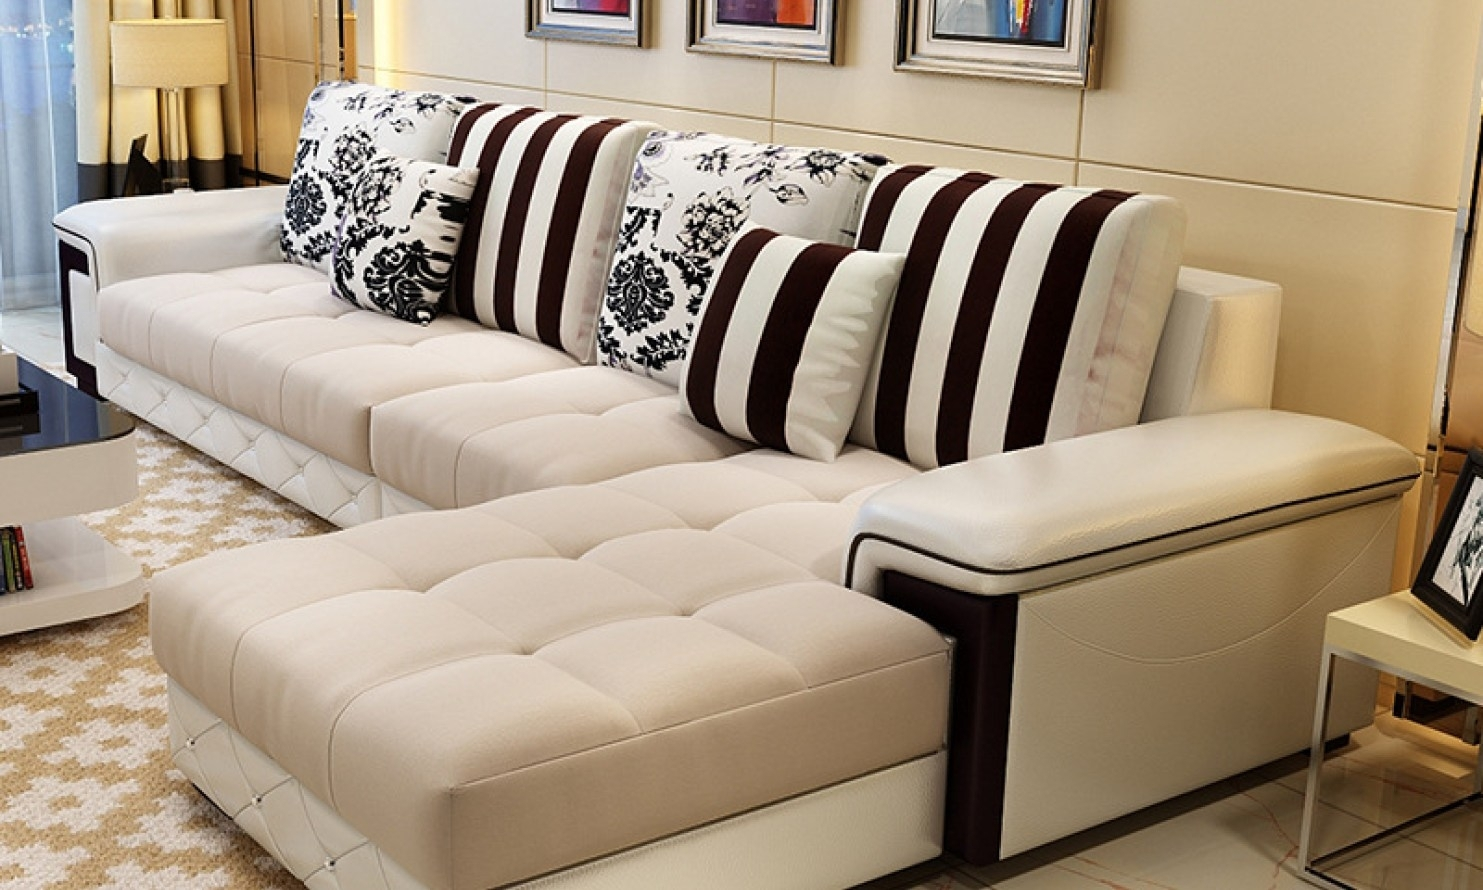 Uncategorized : Sofa For Studio Apartment Inside Greatest Sofa Small with regard to Apartment Sofas